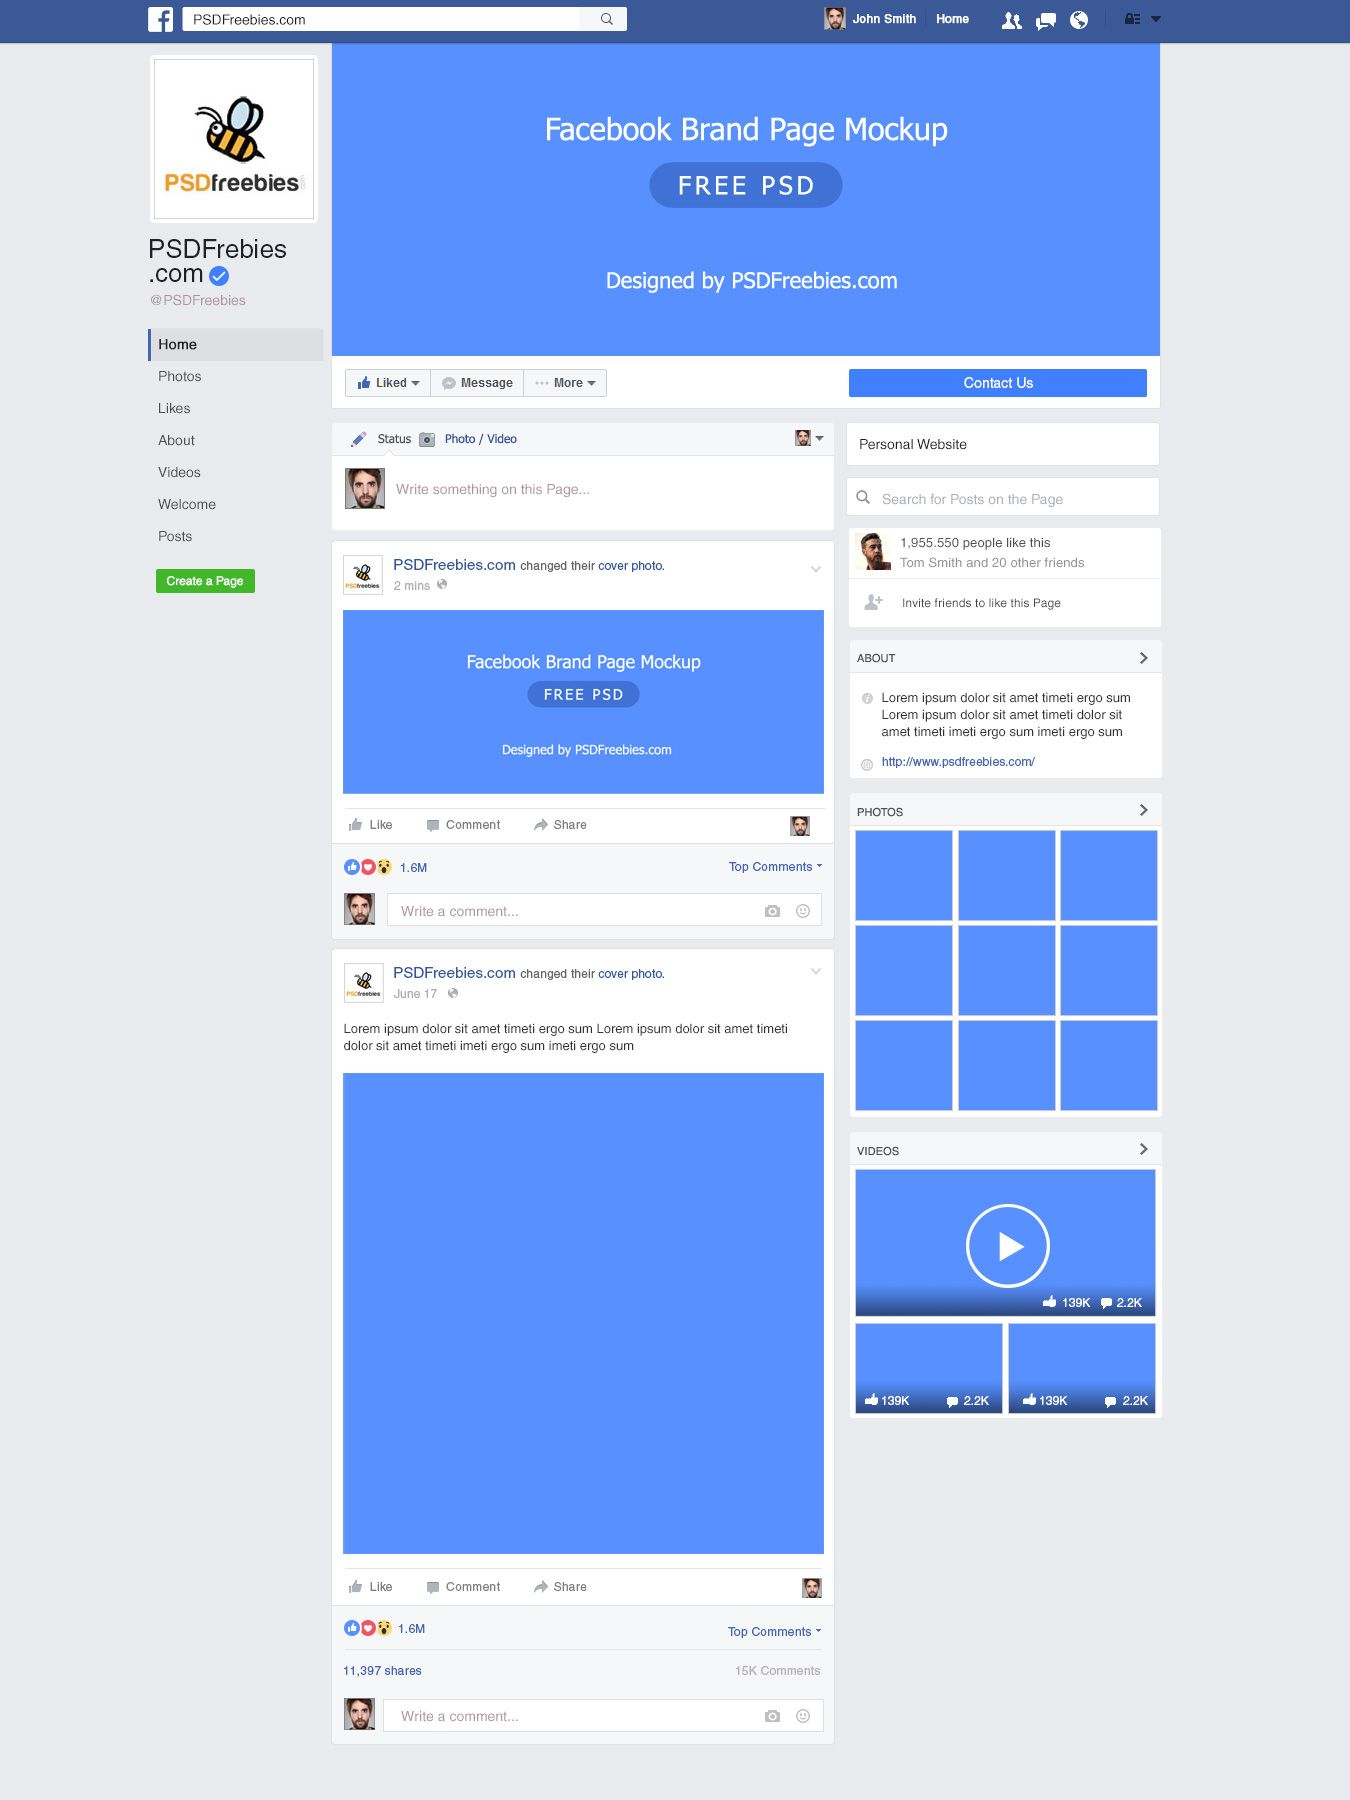 This New Facebook Brand Page 2016 Mockup Psd Is Designed To Make It